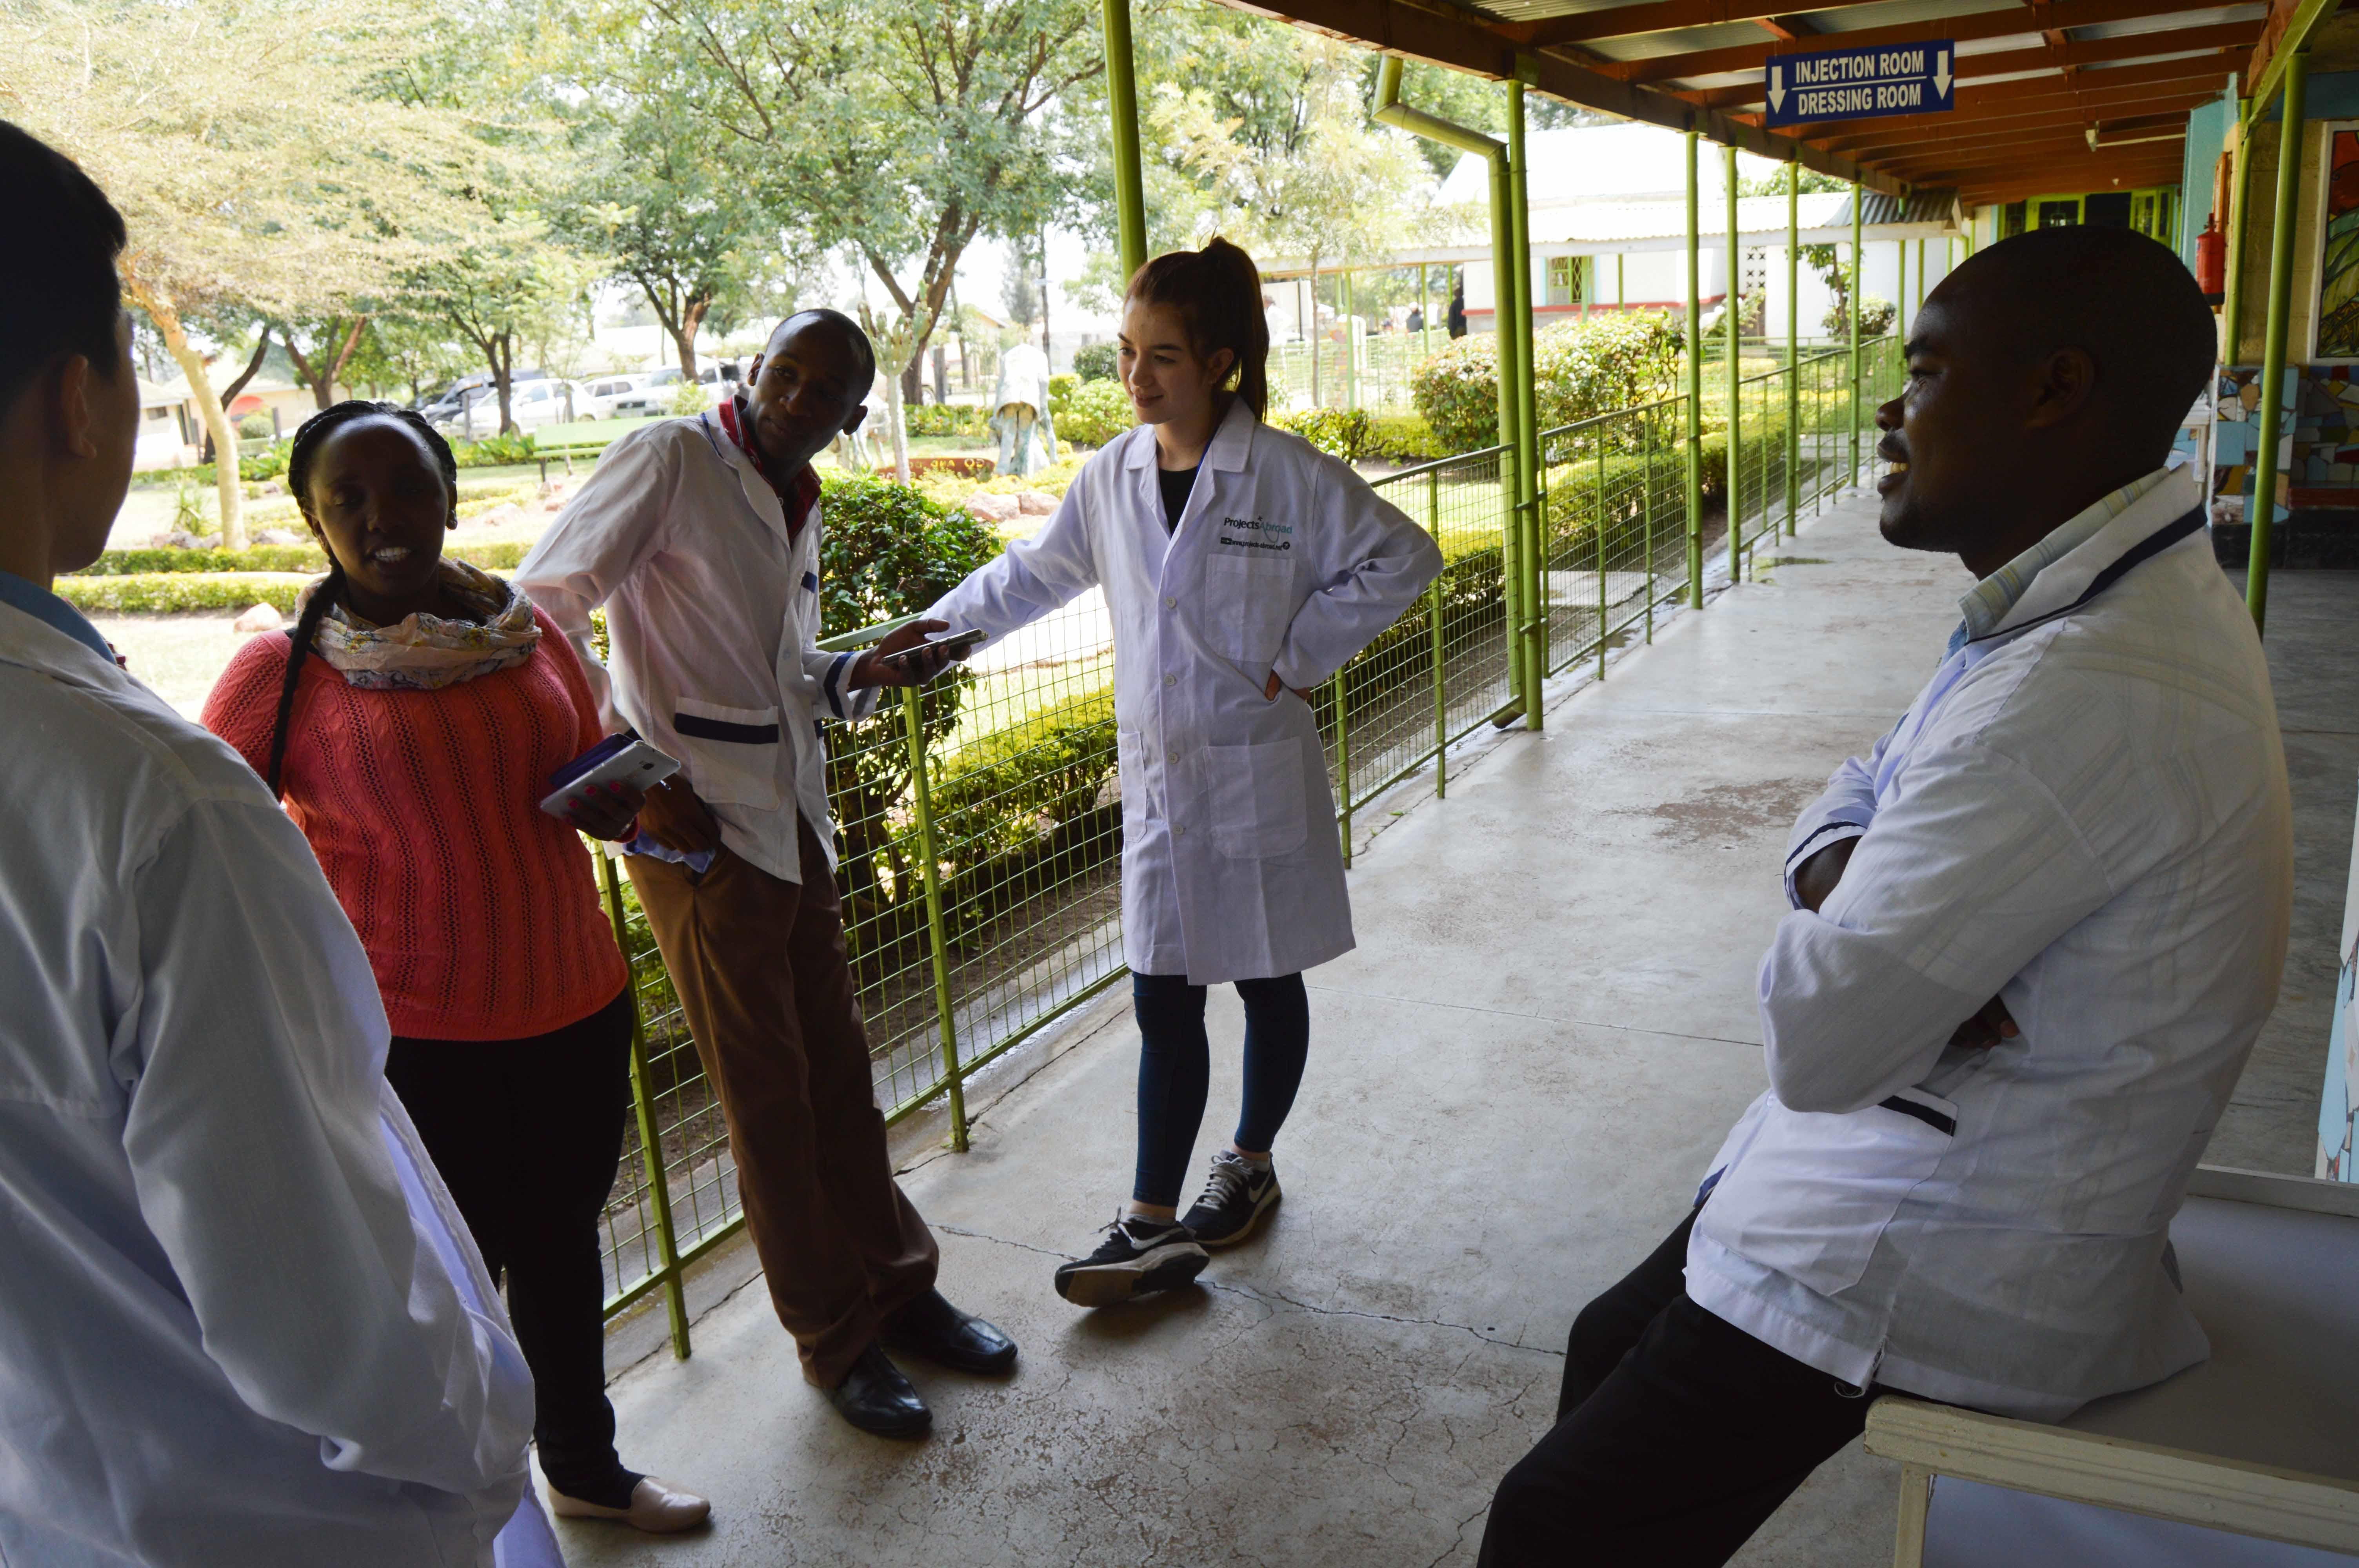 Projects Abroad occupational therapy in Kenya interns are pictured conversing with local doctors outside the hospital during their work experience.